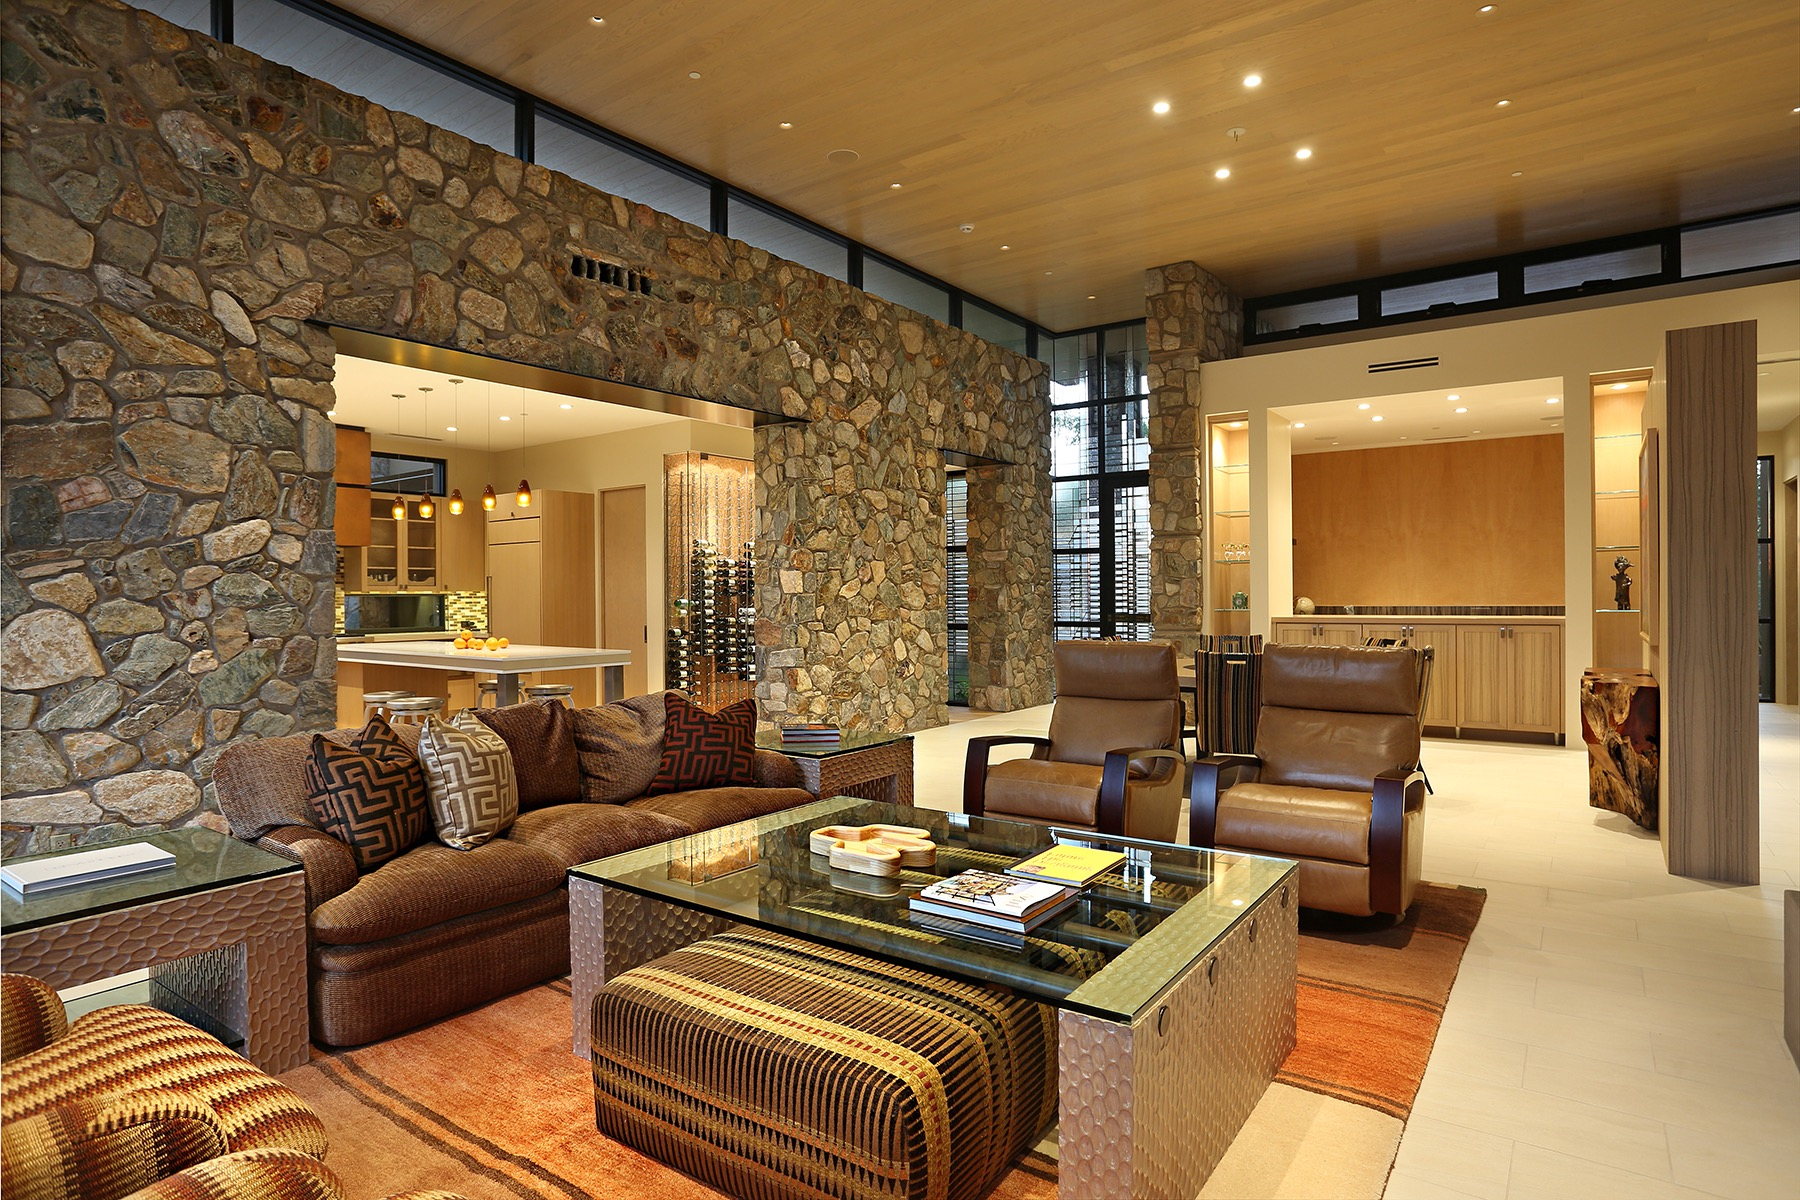 Luxury Southwestern Living Room With Stone Accent Wall (View 16 of 18)